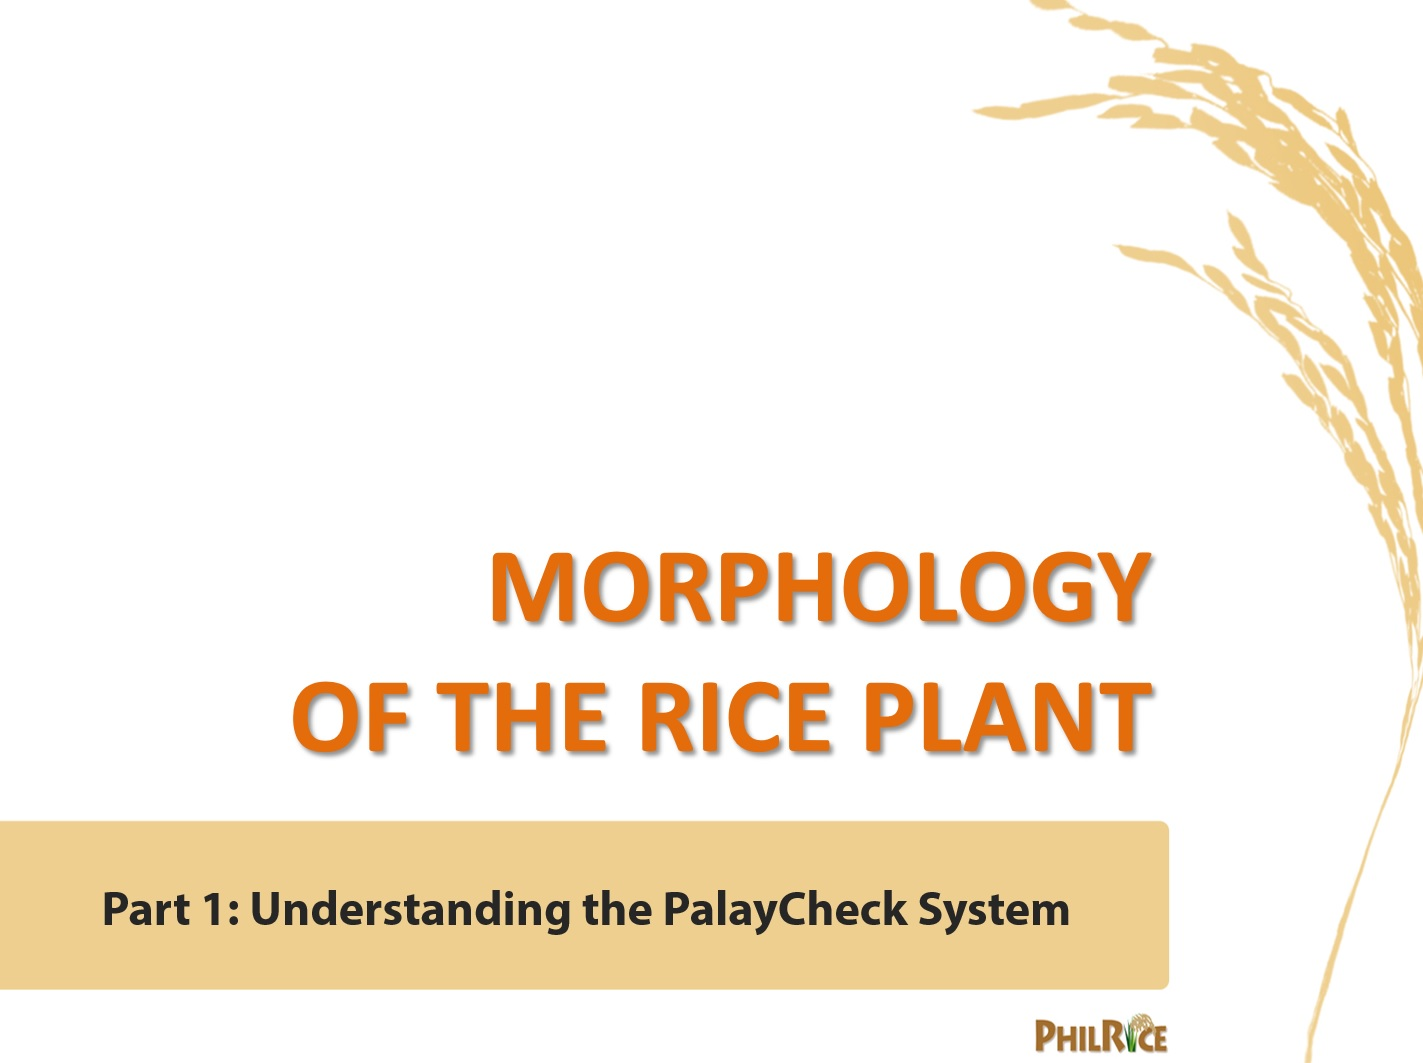 Morphology of the rice plant